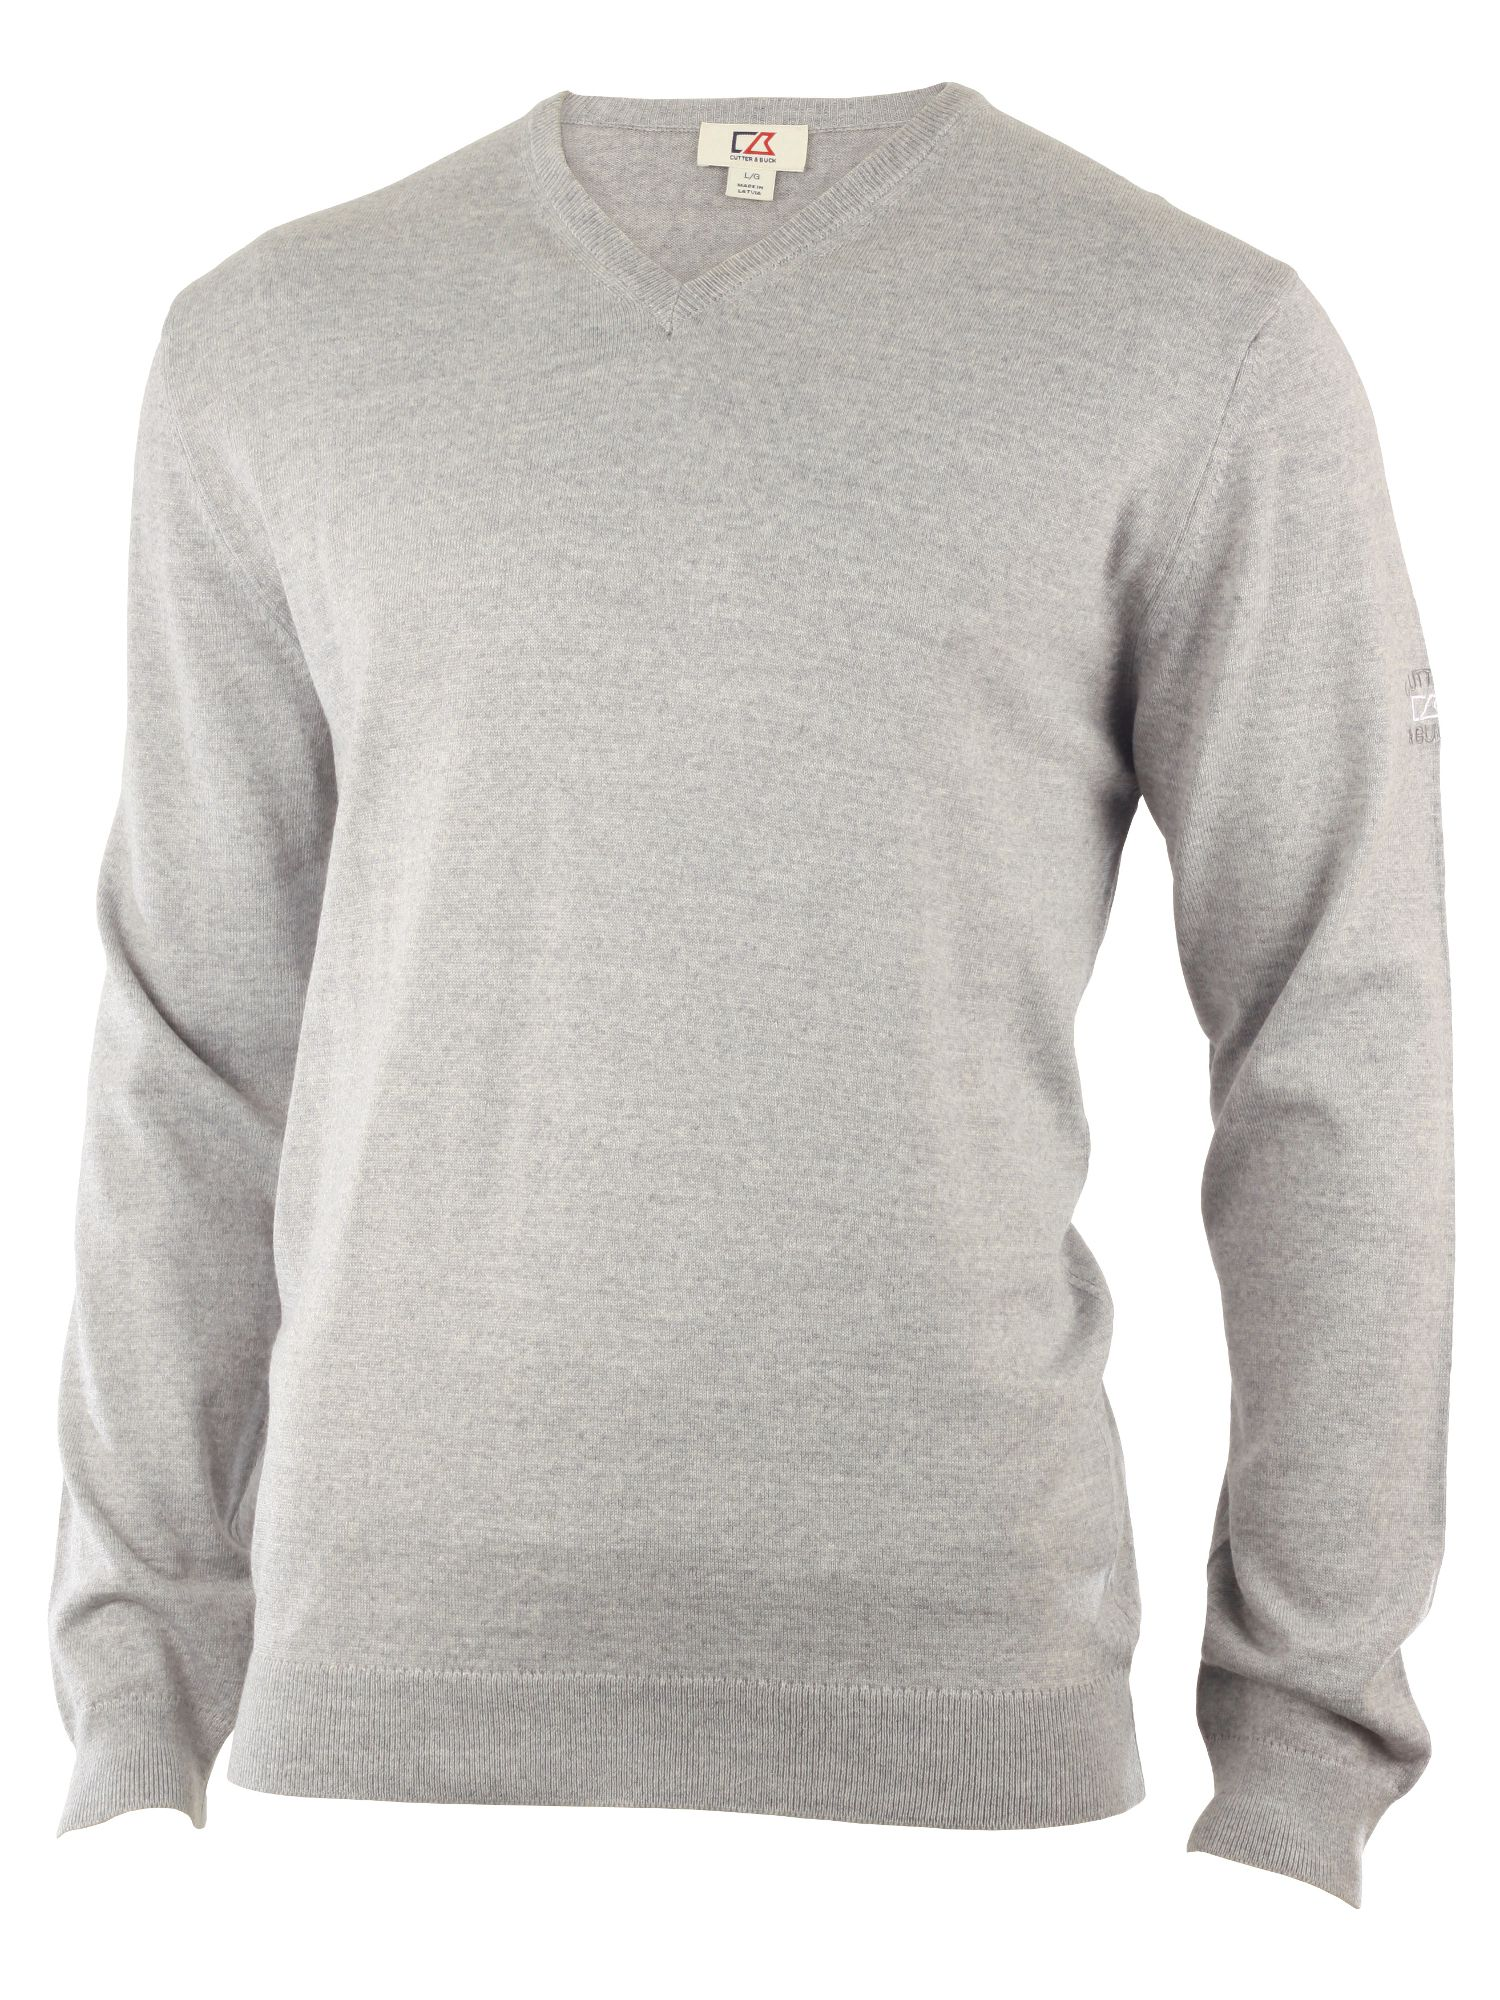 Cutter and Buck Men's Cutter and Buck Merino v neck sweater, Silver